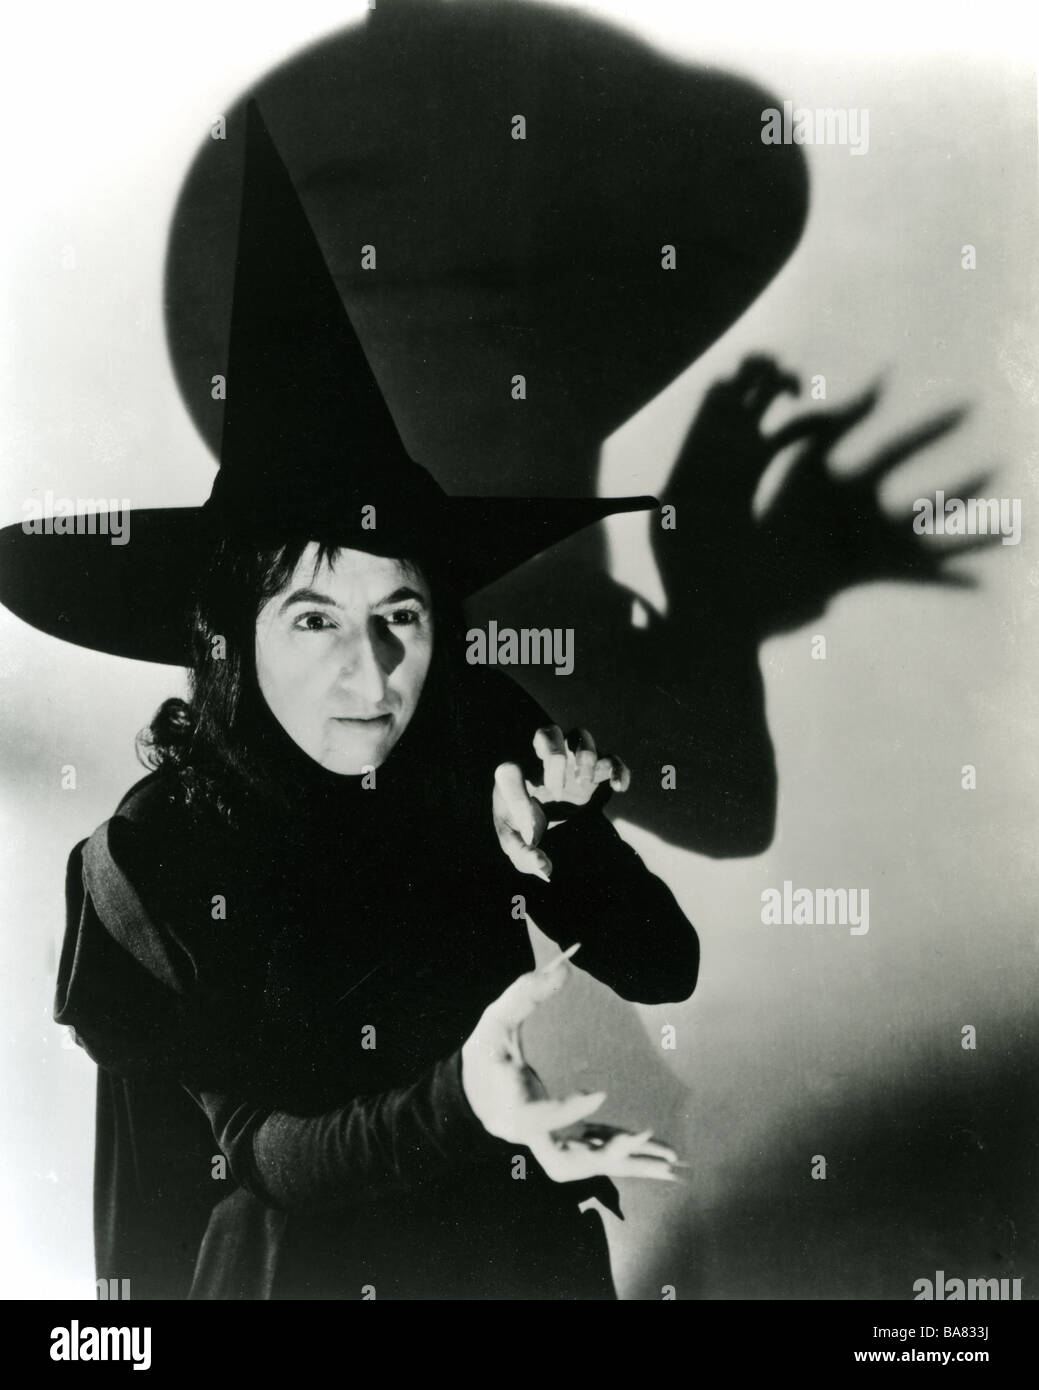 The wizard of oz 1939 mgm film with margaret hamilton as the wicked witch stock